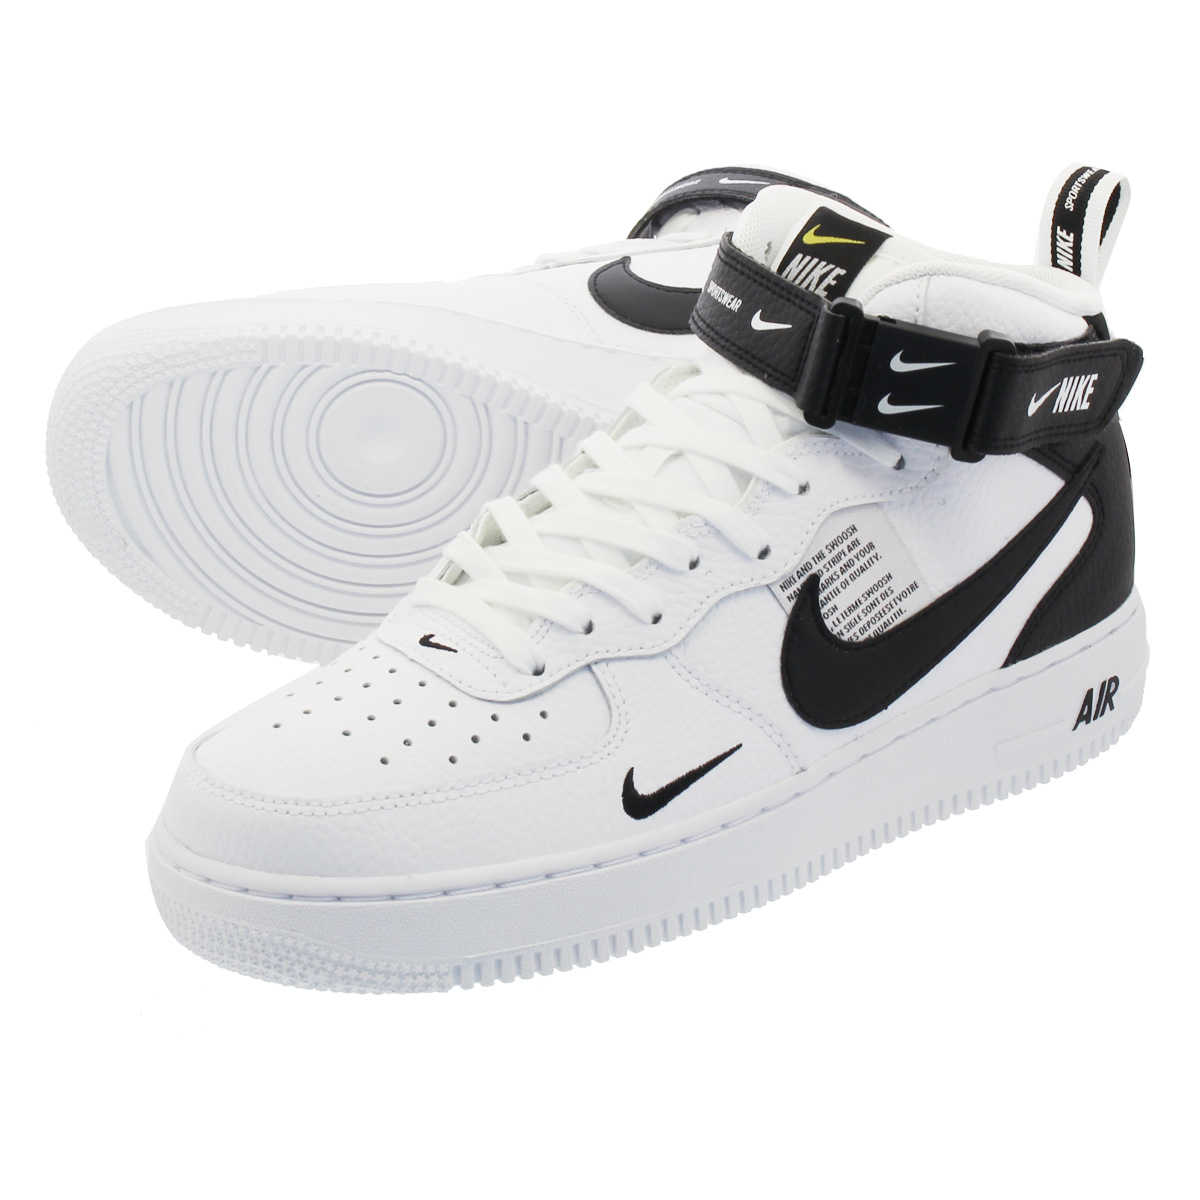 NIKE AIR FORCE 1 MID '07 LV8 UTILITY Nike air force 1 mid '07 LV8 utility WHITEBLACK 804,609 103